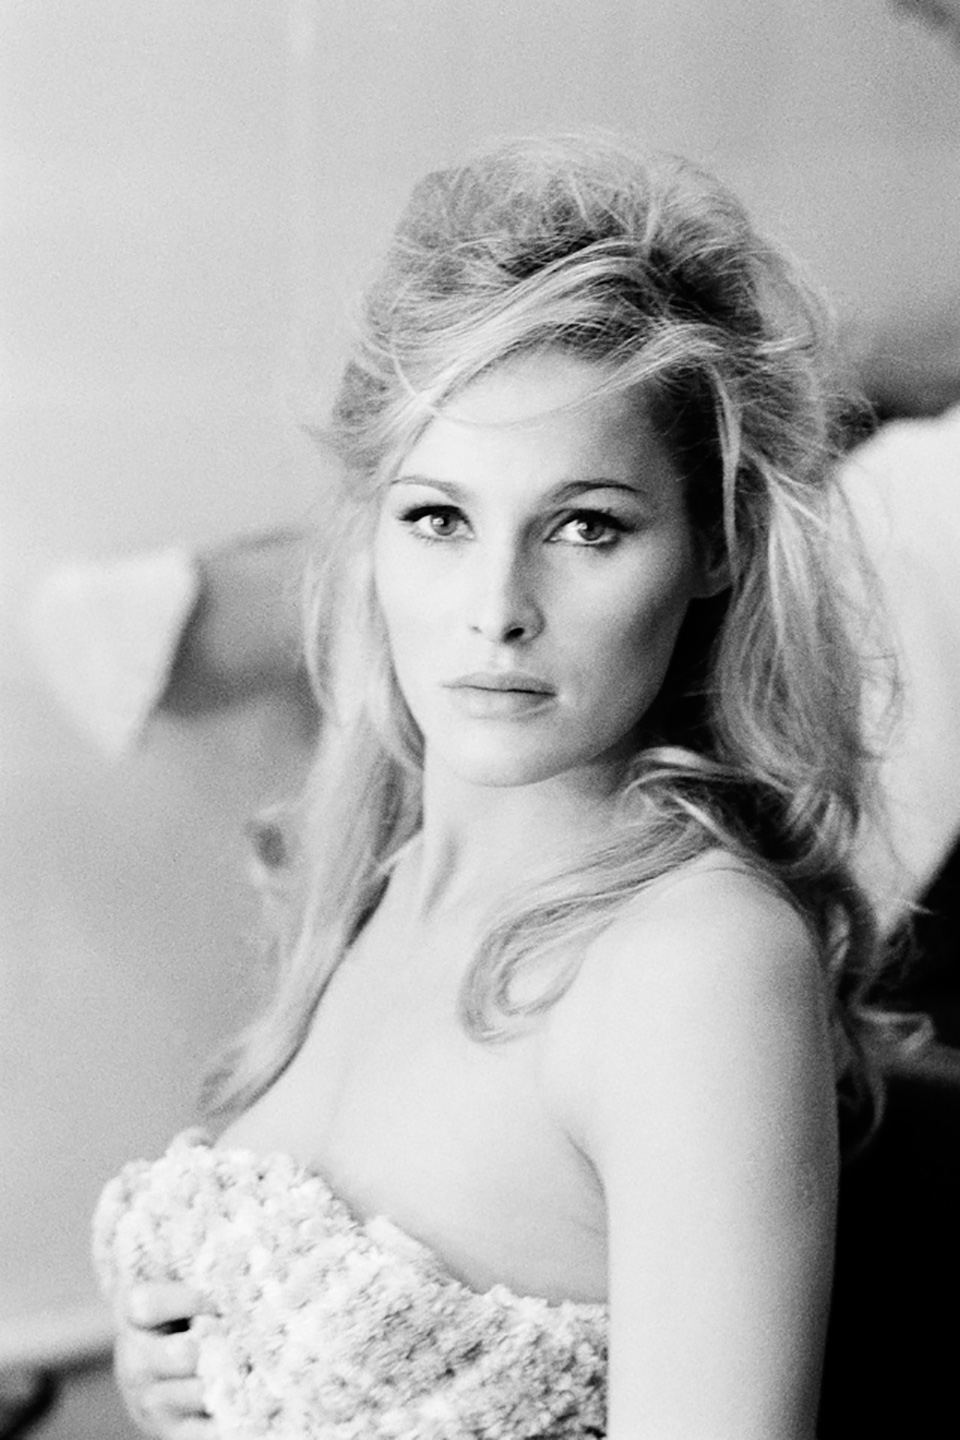 URSULA_ANDRESS_1965